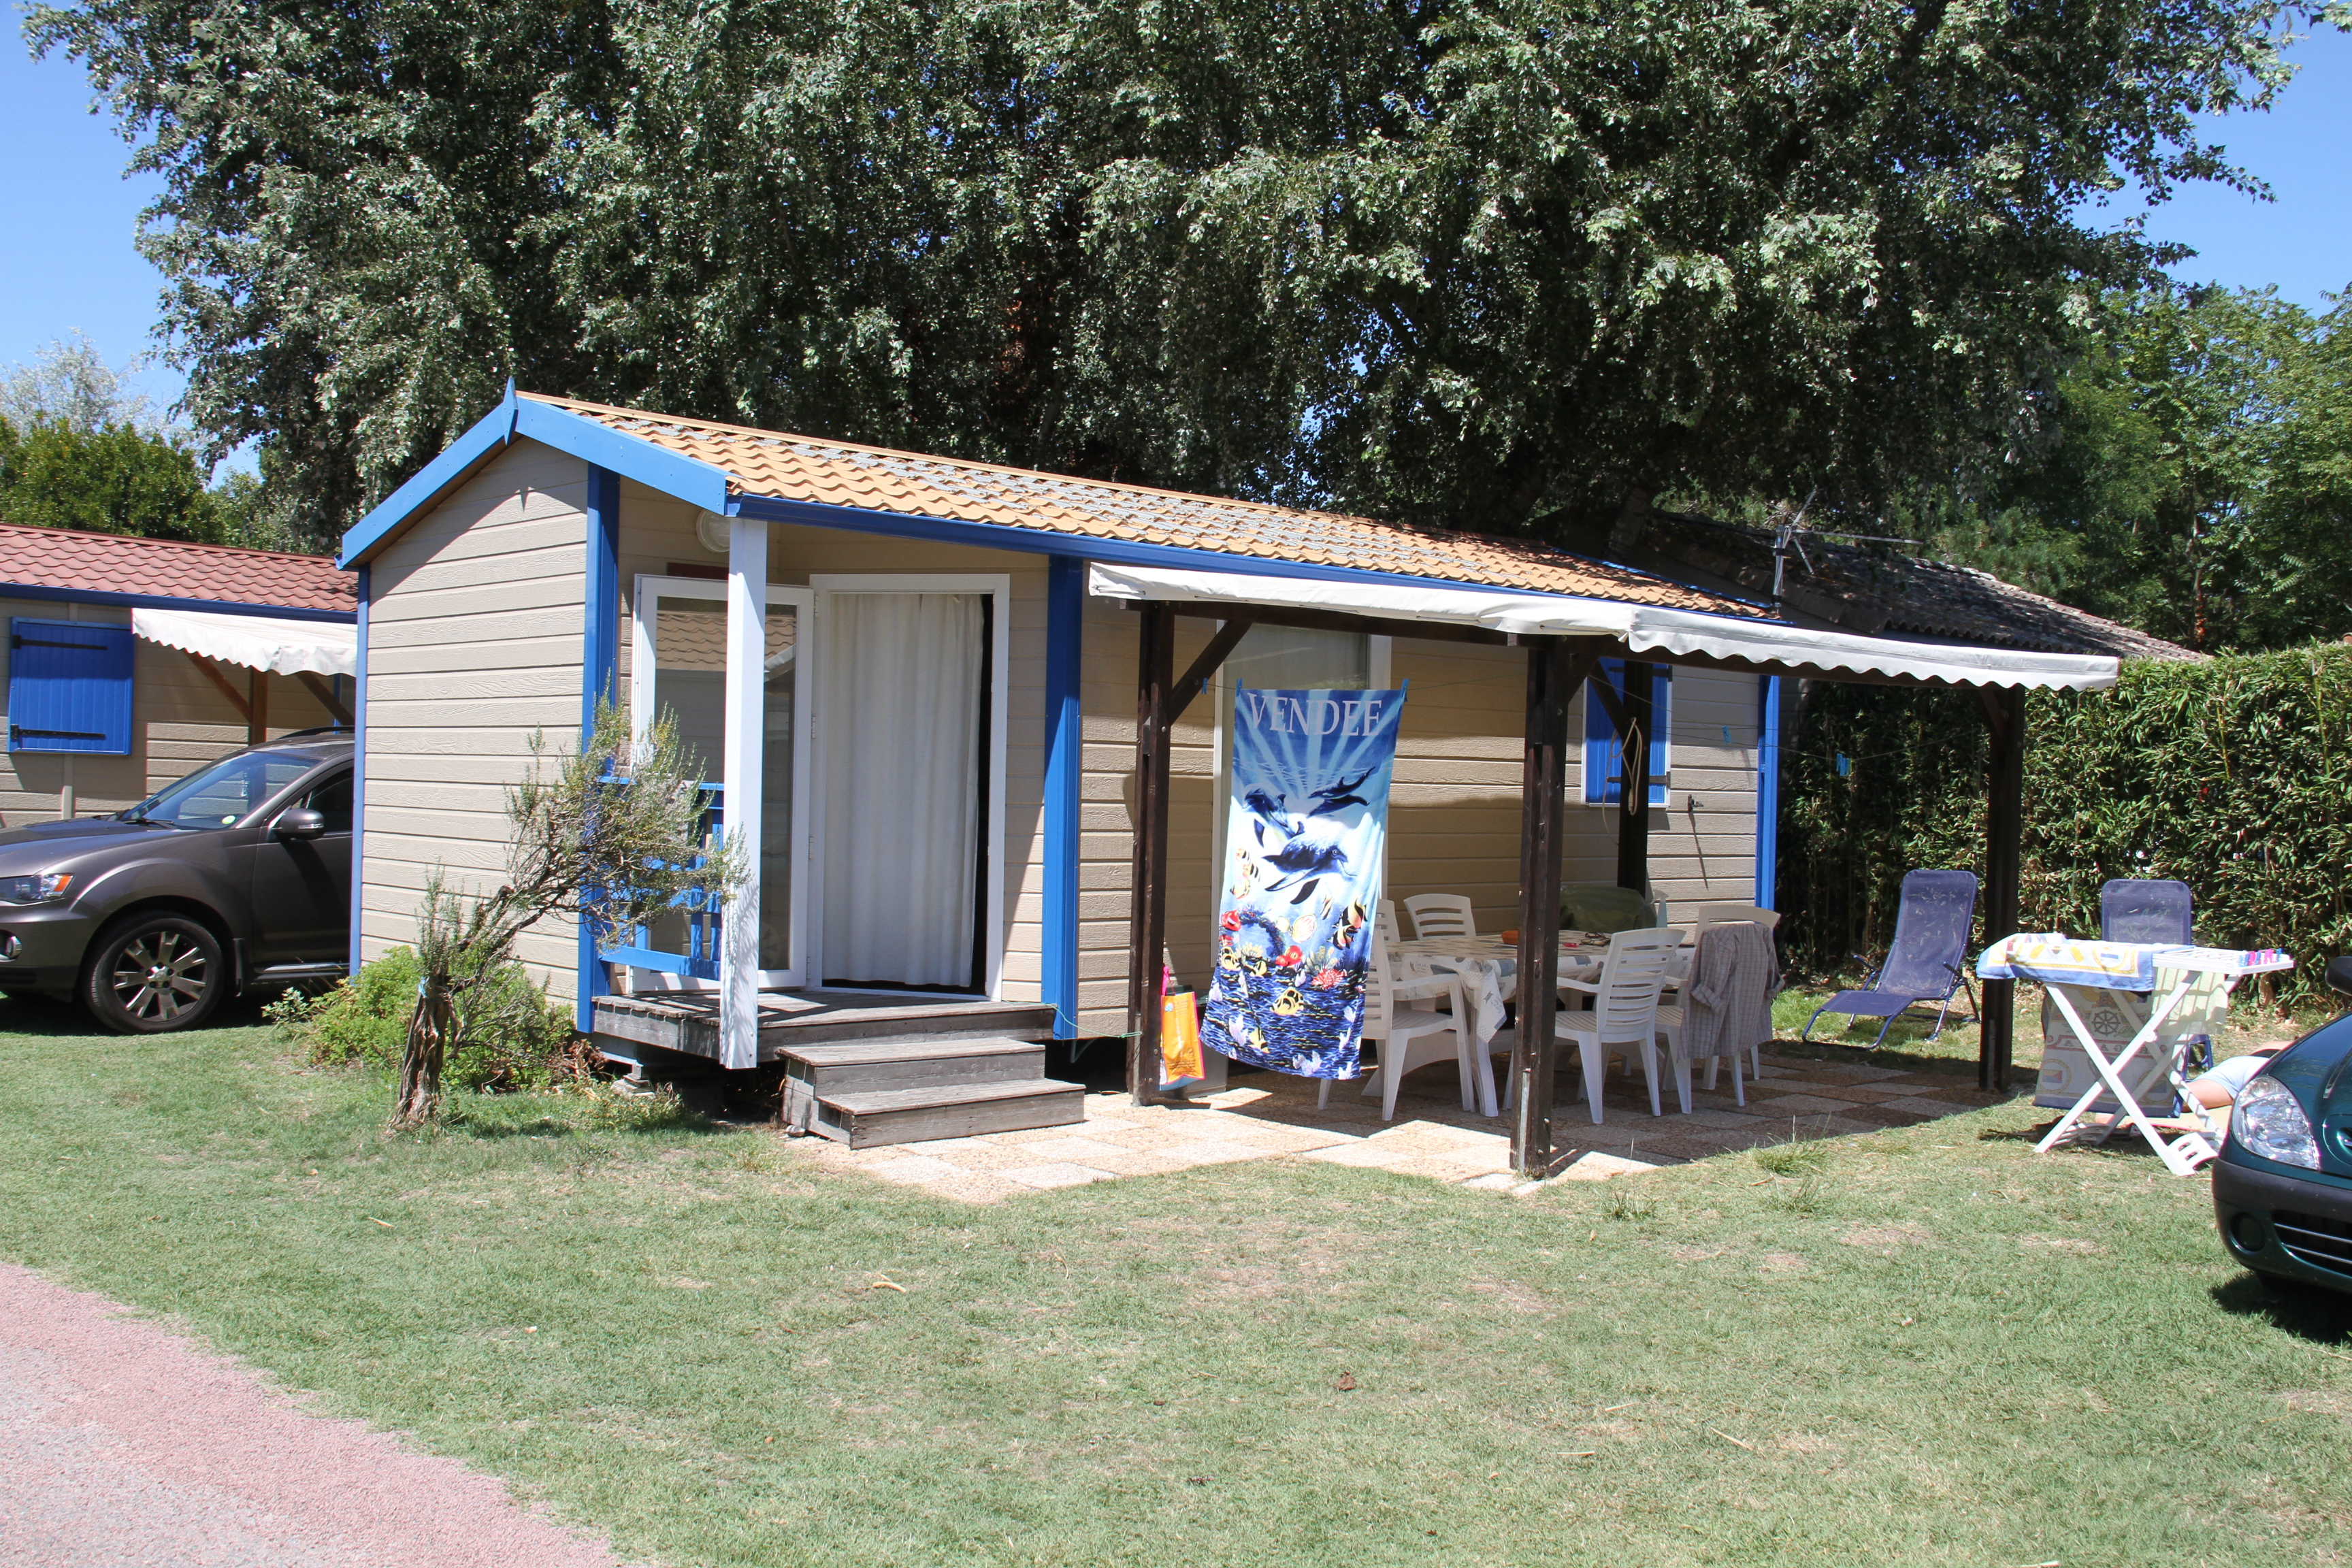 ile d'Oleron Mobil Home Initial (1)